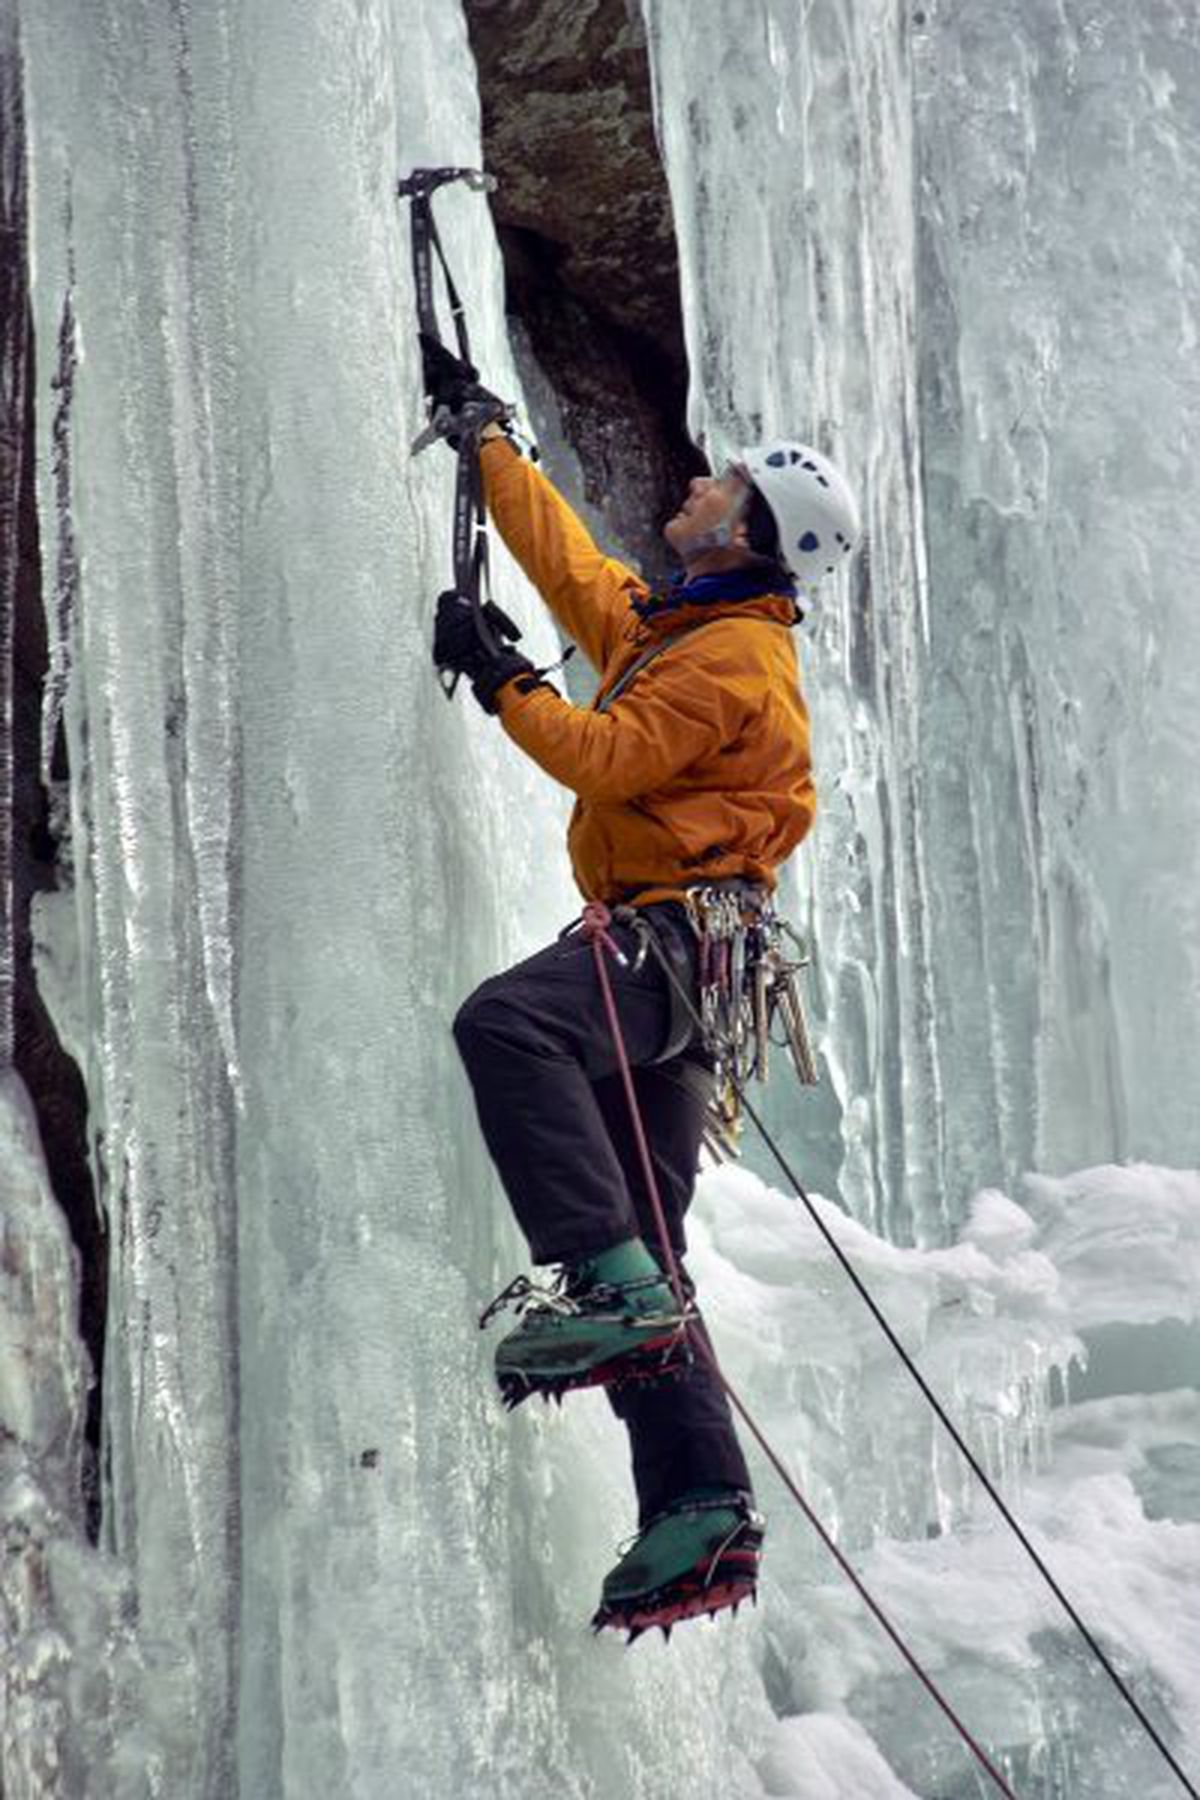 Ice climbing requires more specialized equipment